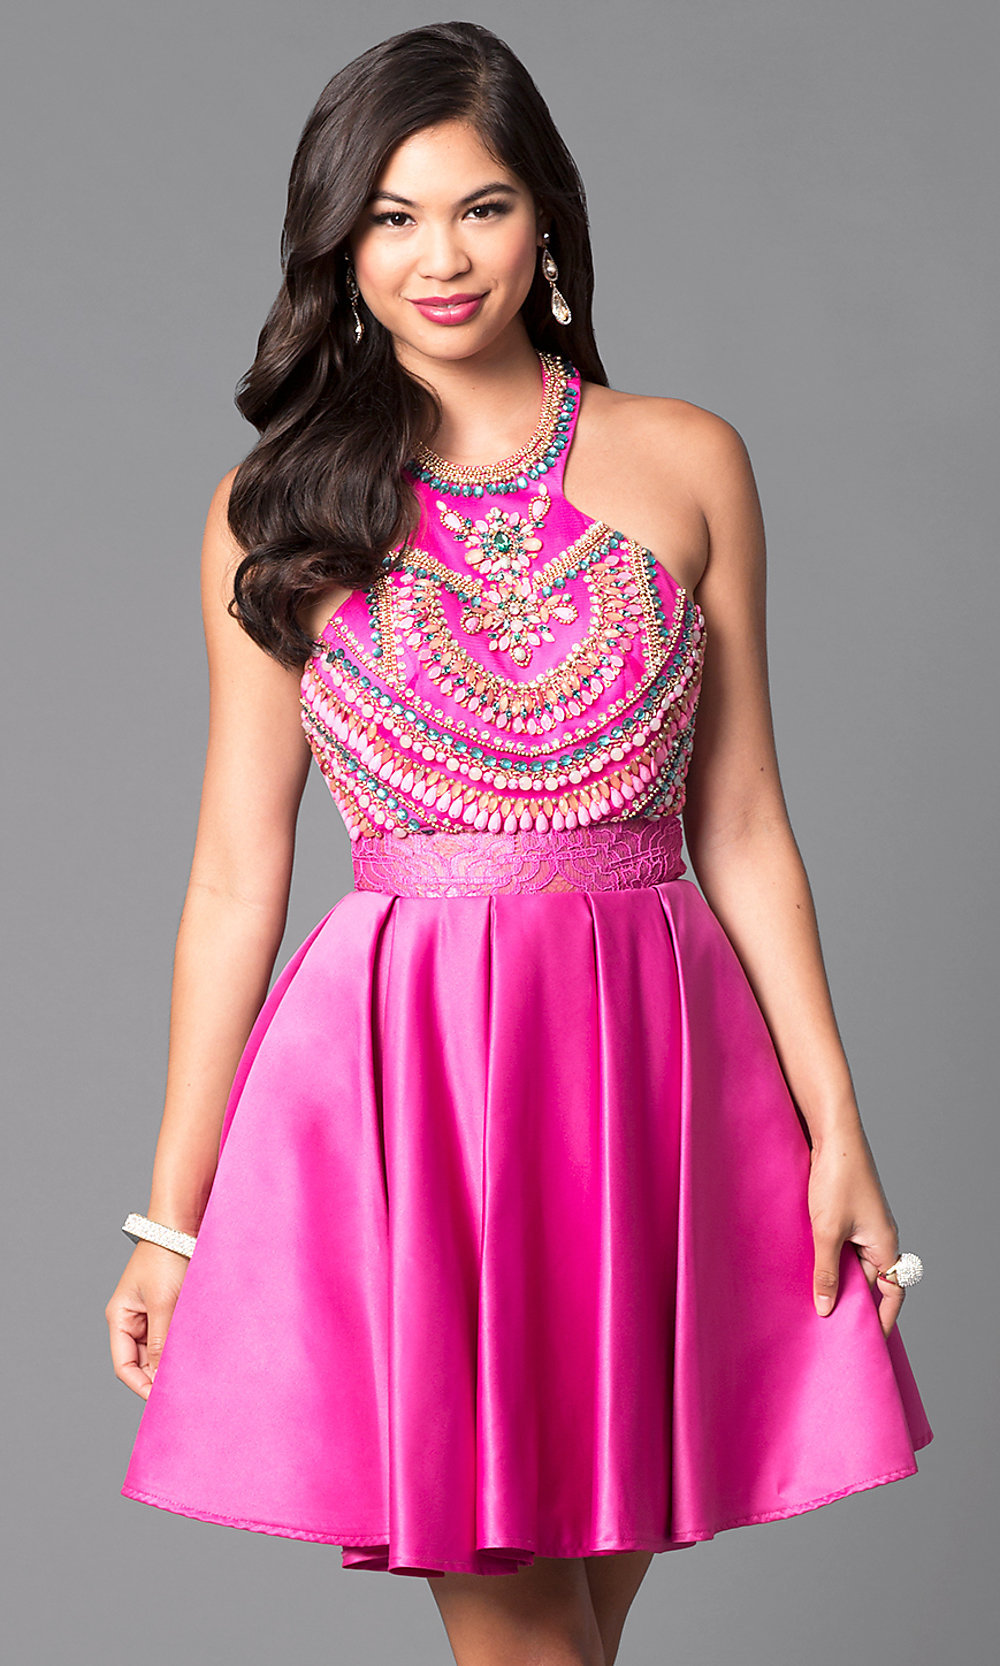 a158d89ffeb Tap to expand · Image of jewel-embellished short halter party dress.